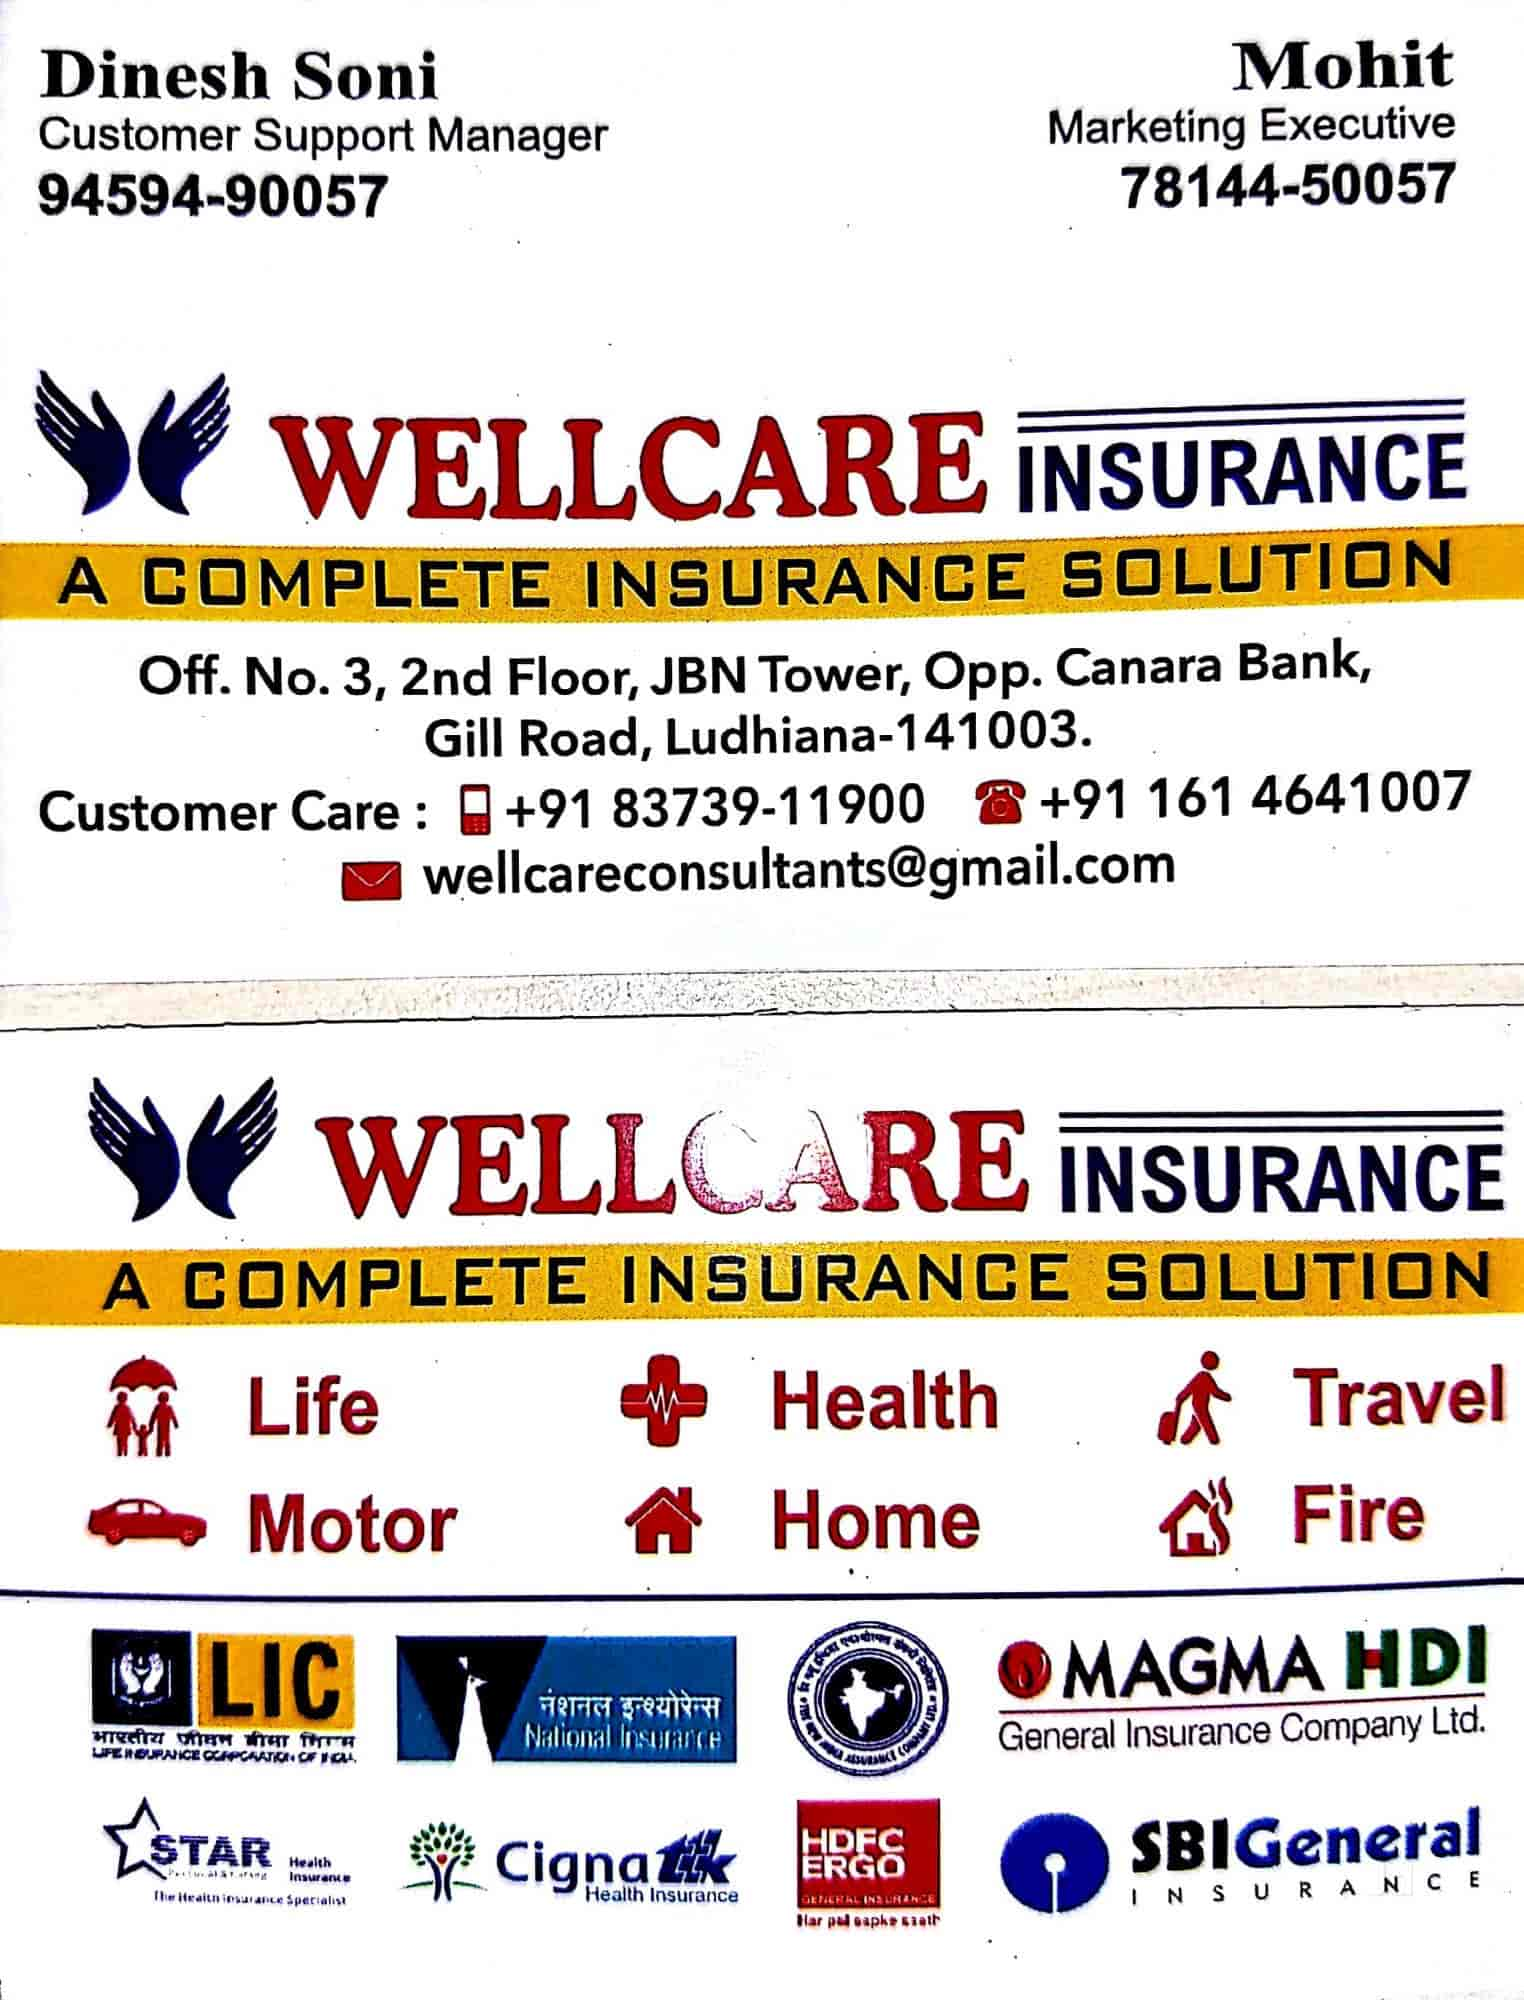 Wellcare Insurance Photos Gill Road Ludhiana Pictures Images